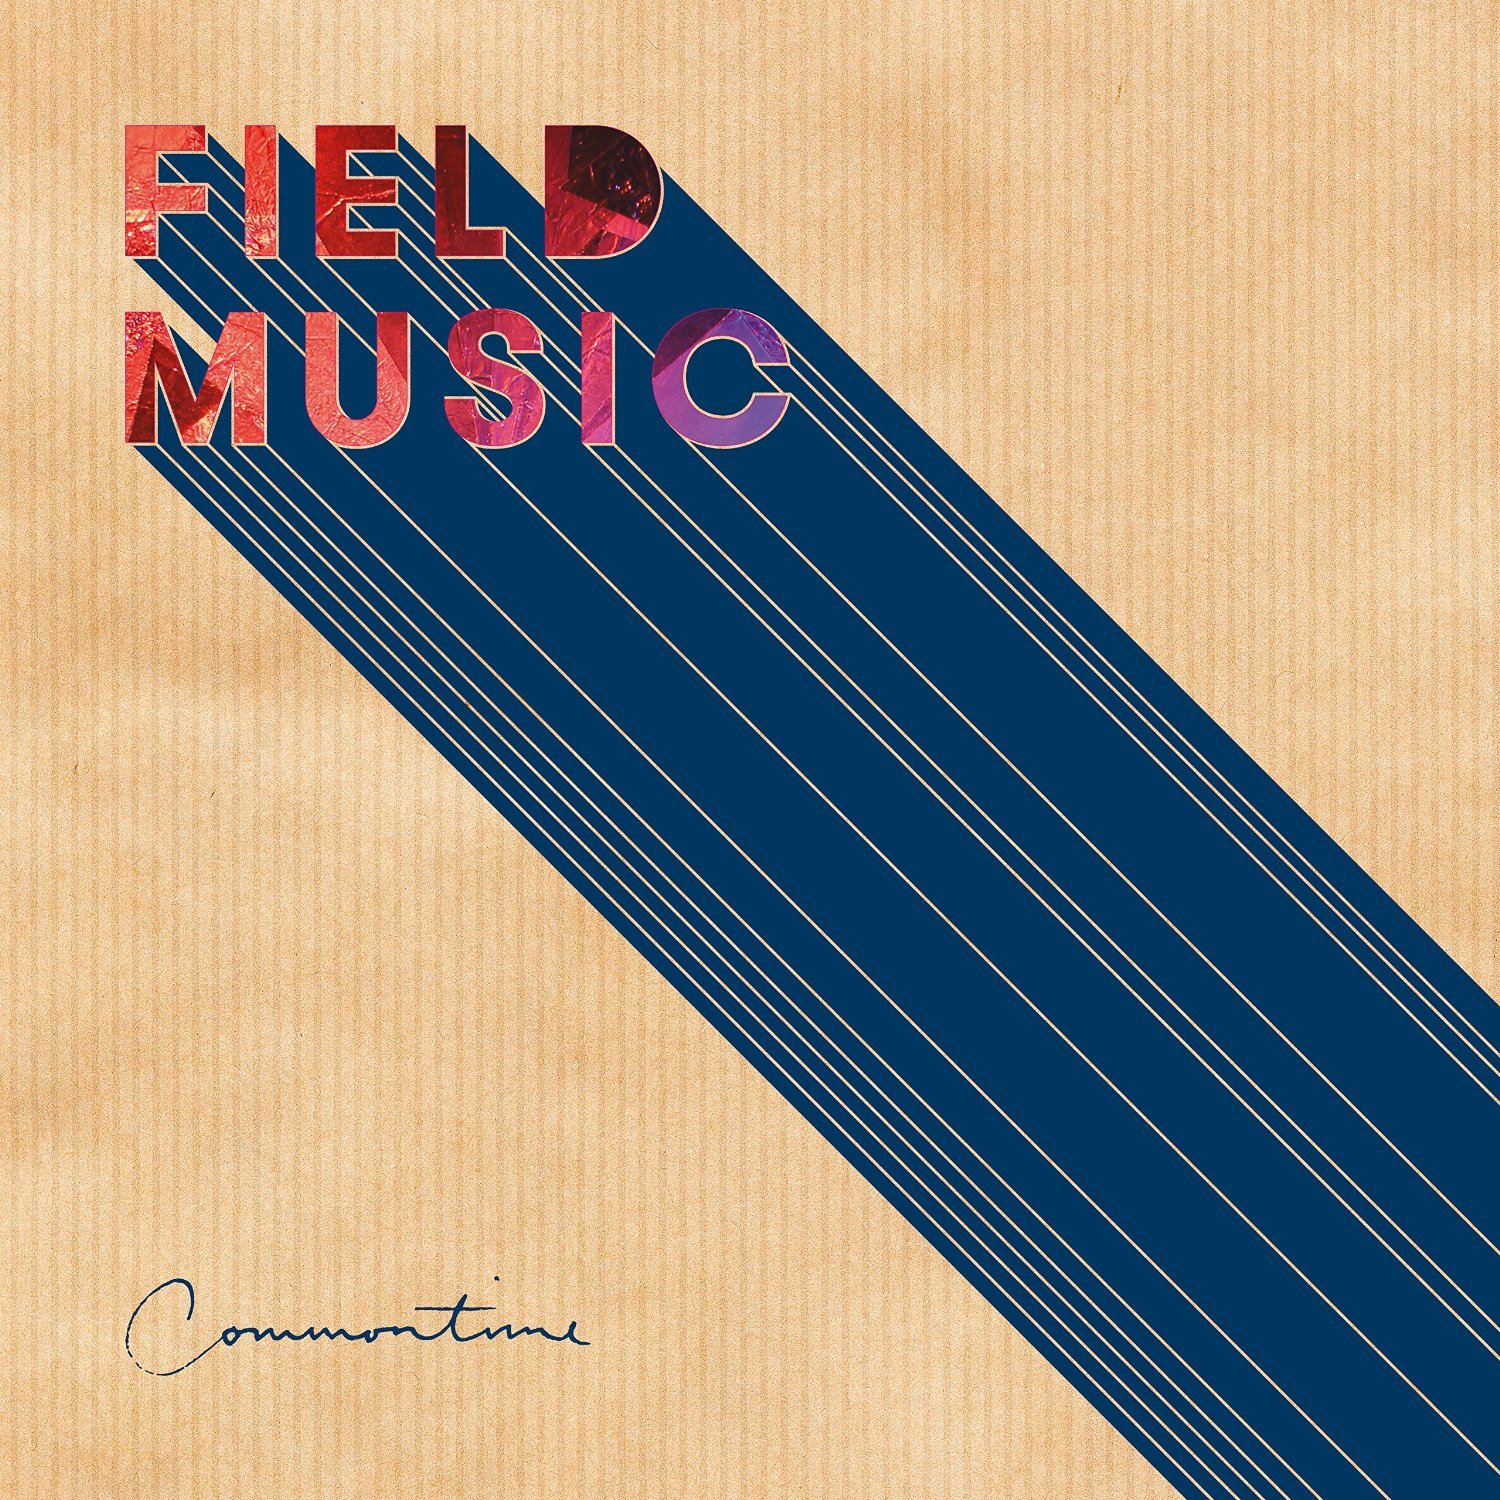 Field Music: Commontime Vinyl Album Art